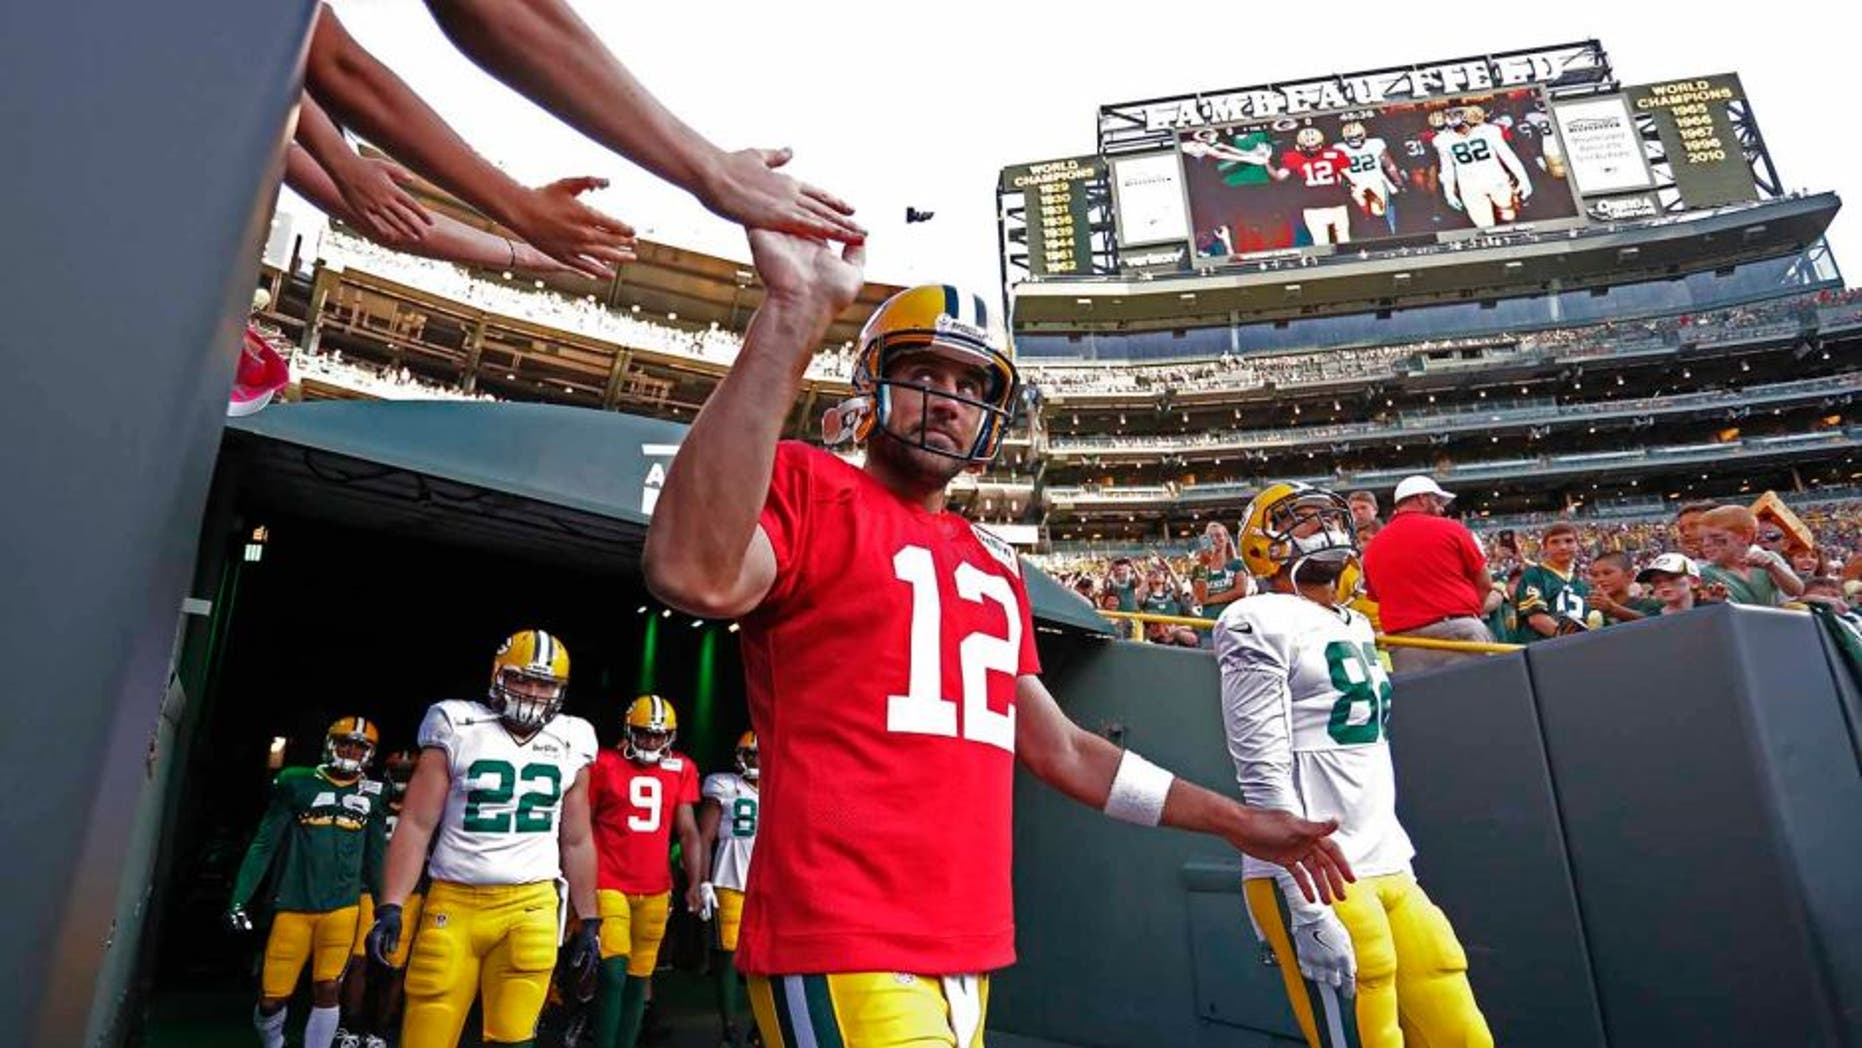 Green Bay Packers quarterback Aaron Rodgers shares a high five with a fan as he enters Lambeau Field during NFL football training camp, Sunday, July 31, 2016, in Green Bay, Wis. (AP Photo/Matt Ludtke)